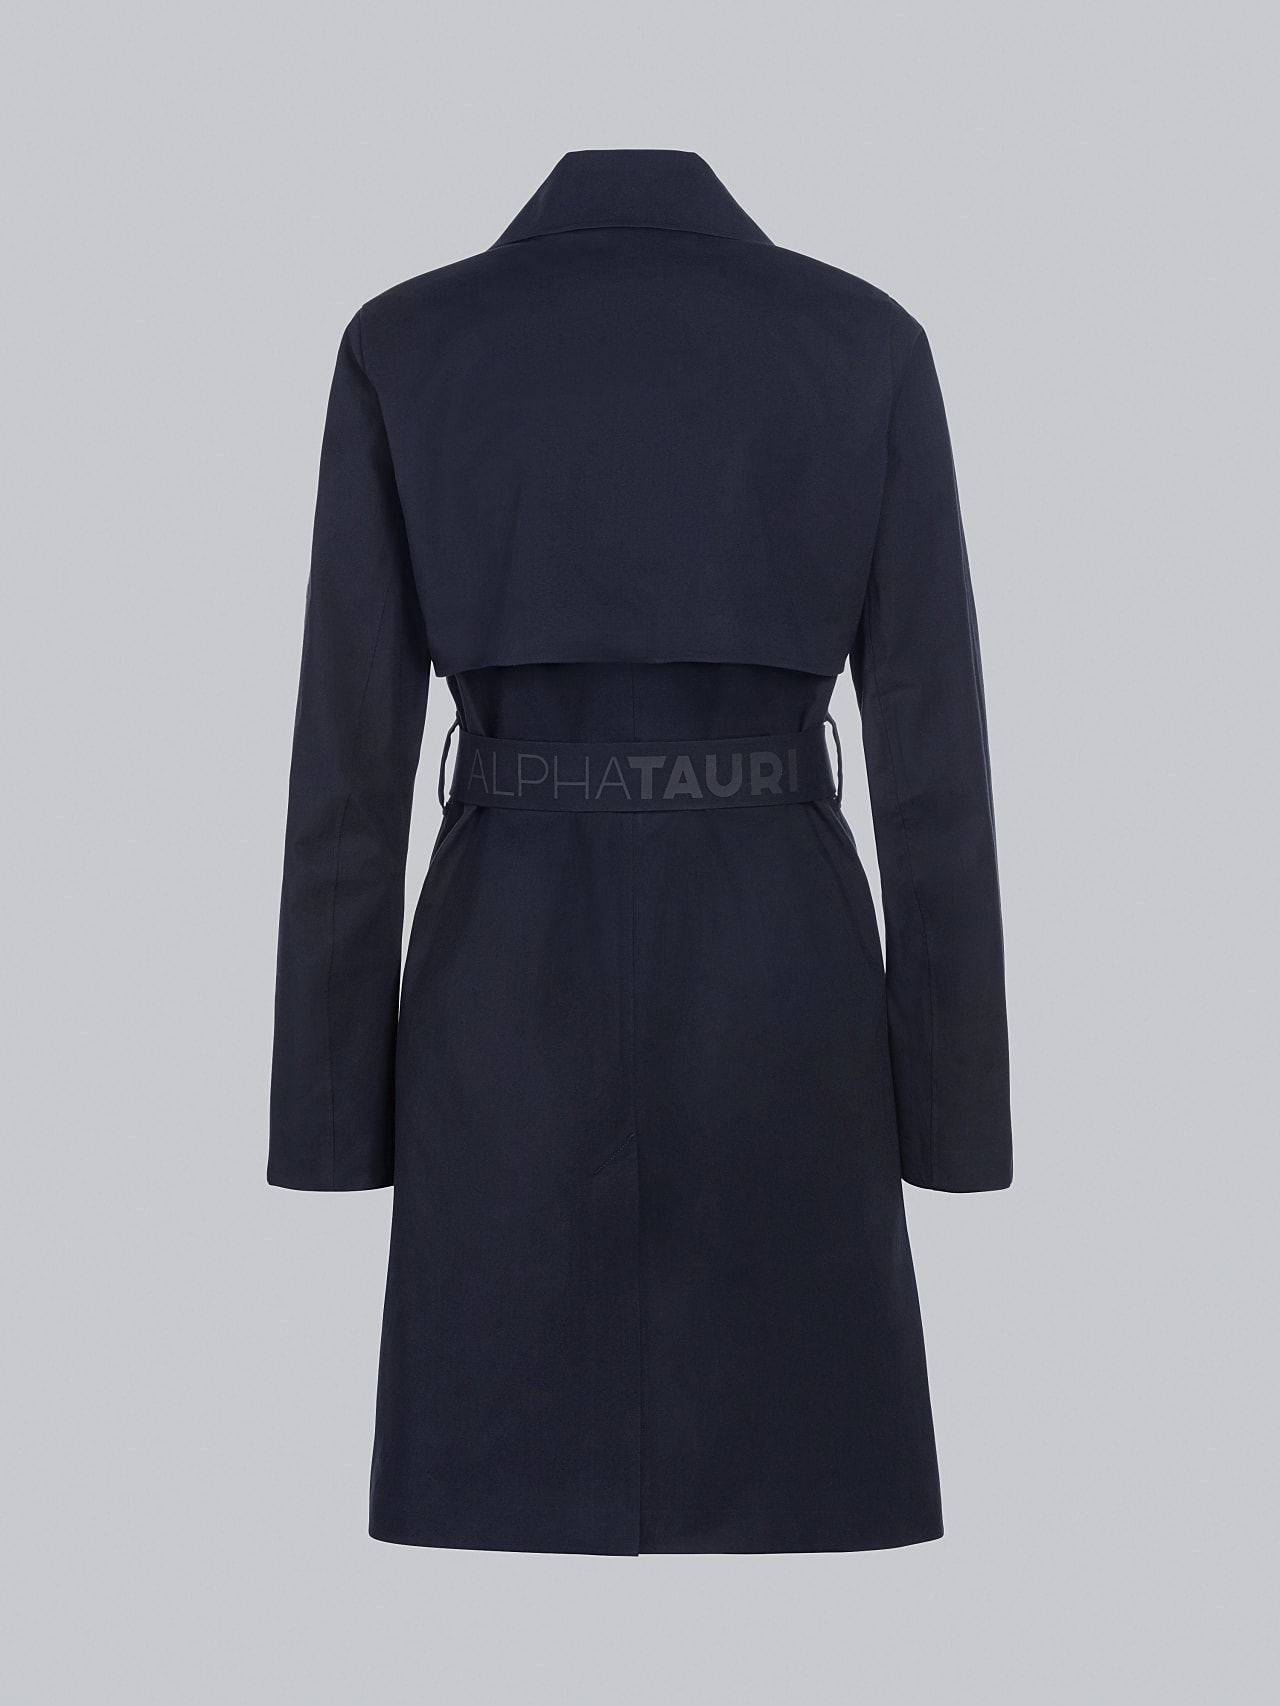 OMANI V1.Y5.02 Packable and Waterproof Trench Coat navy Left Alpha Tauri